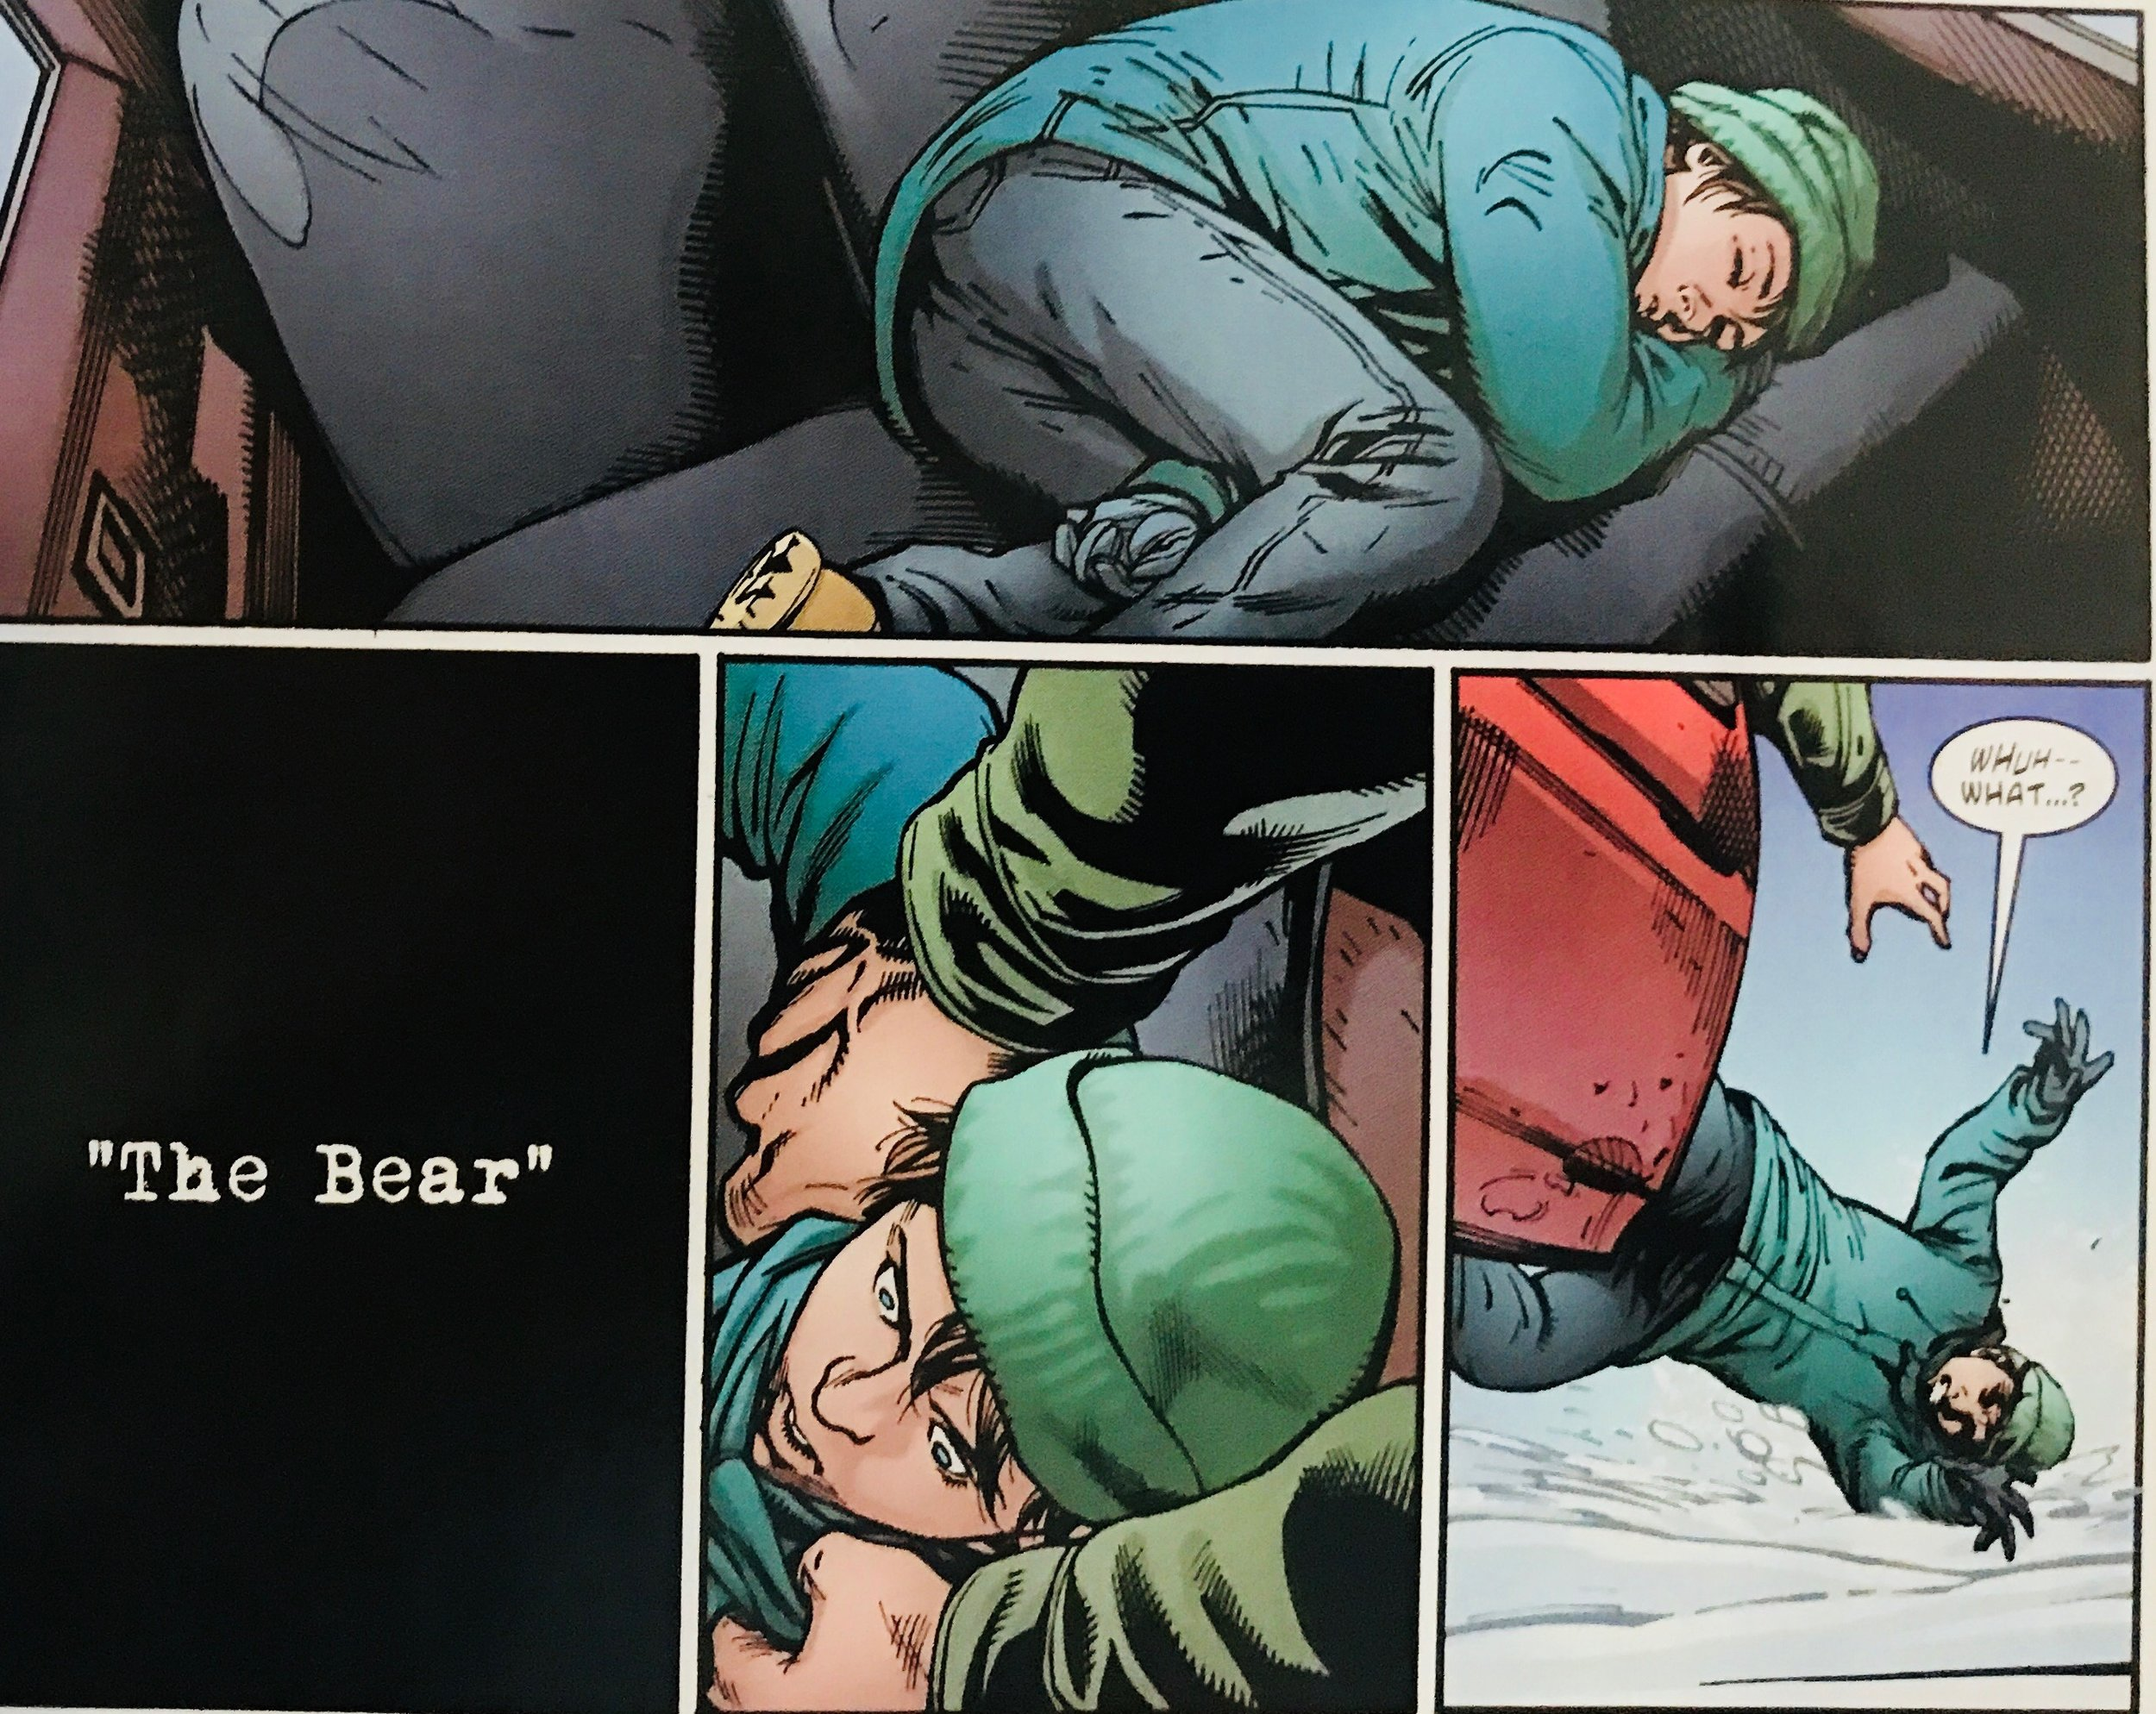 The first panel of Priest's run: Slade's doomed son Grant in the cold, being cast away for weakness by his father.